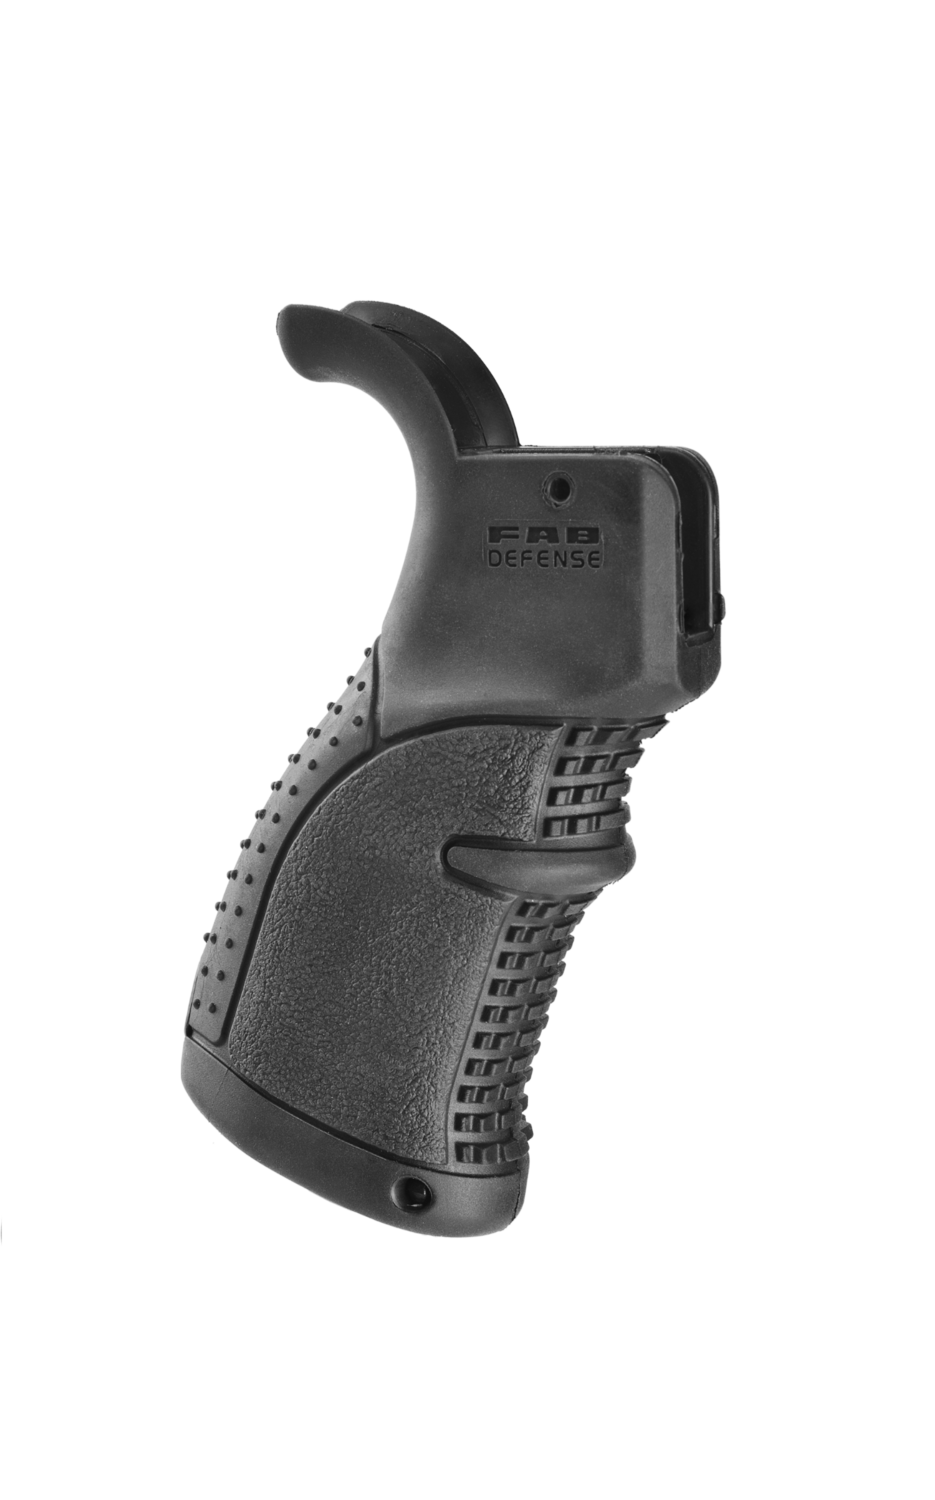 AGR-43 - Rubberized Ergonomic M4/M16/AR15 Pistol Grip